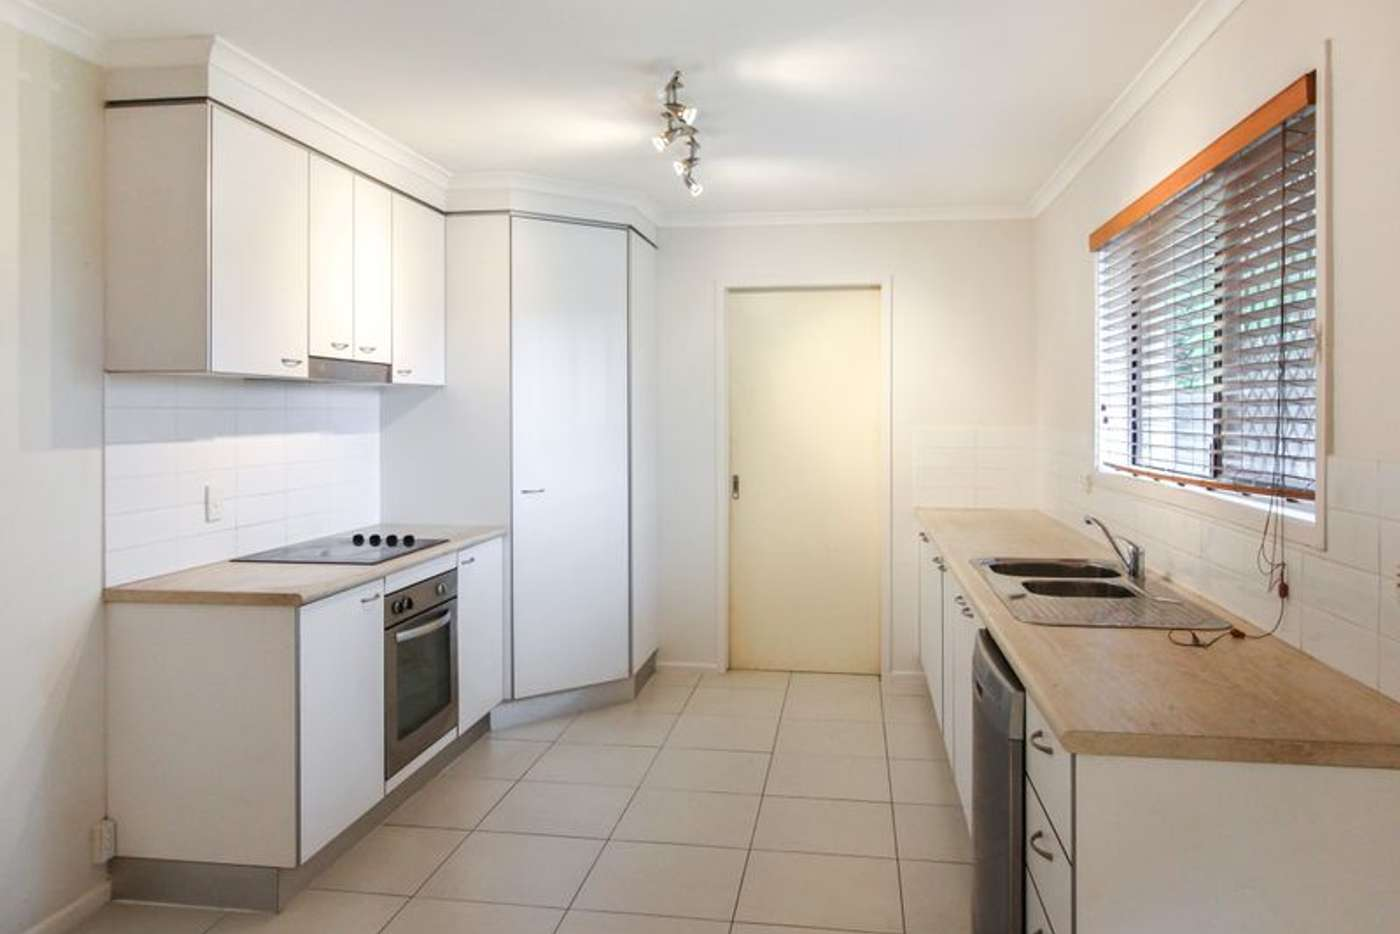 Main view of Homely house listing, 17 Lichen Court, Regents Park QLD 4118